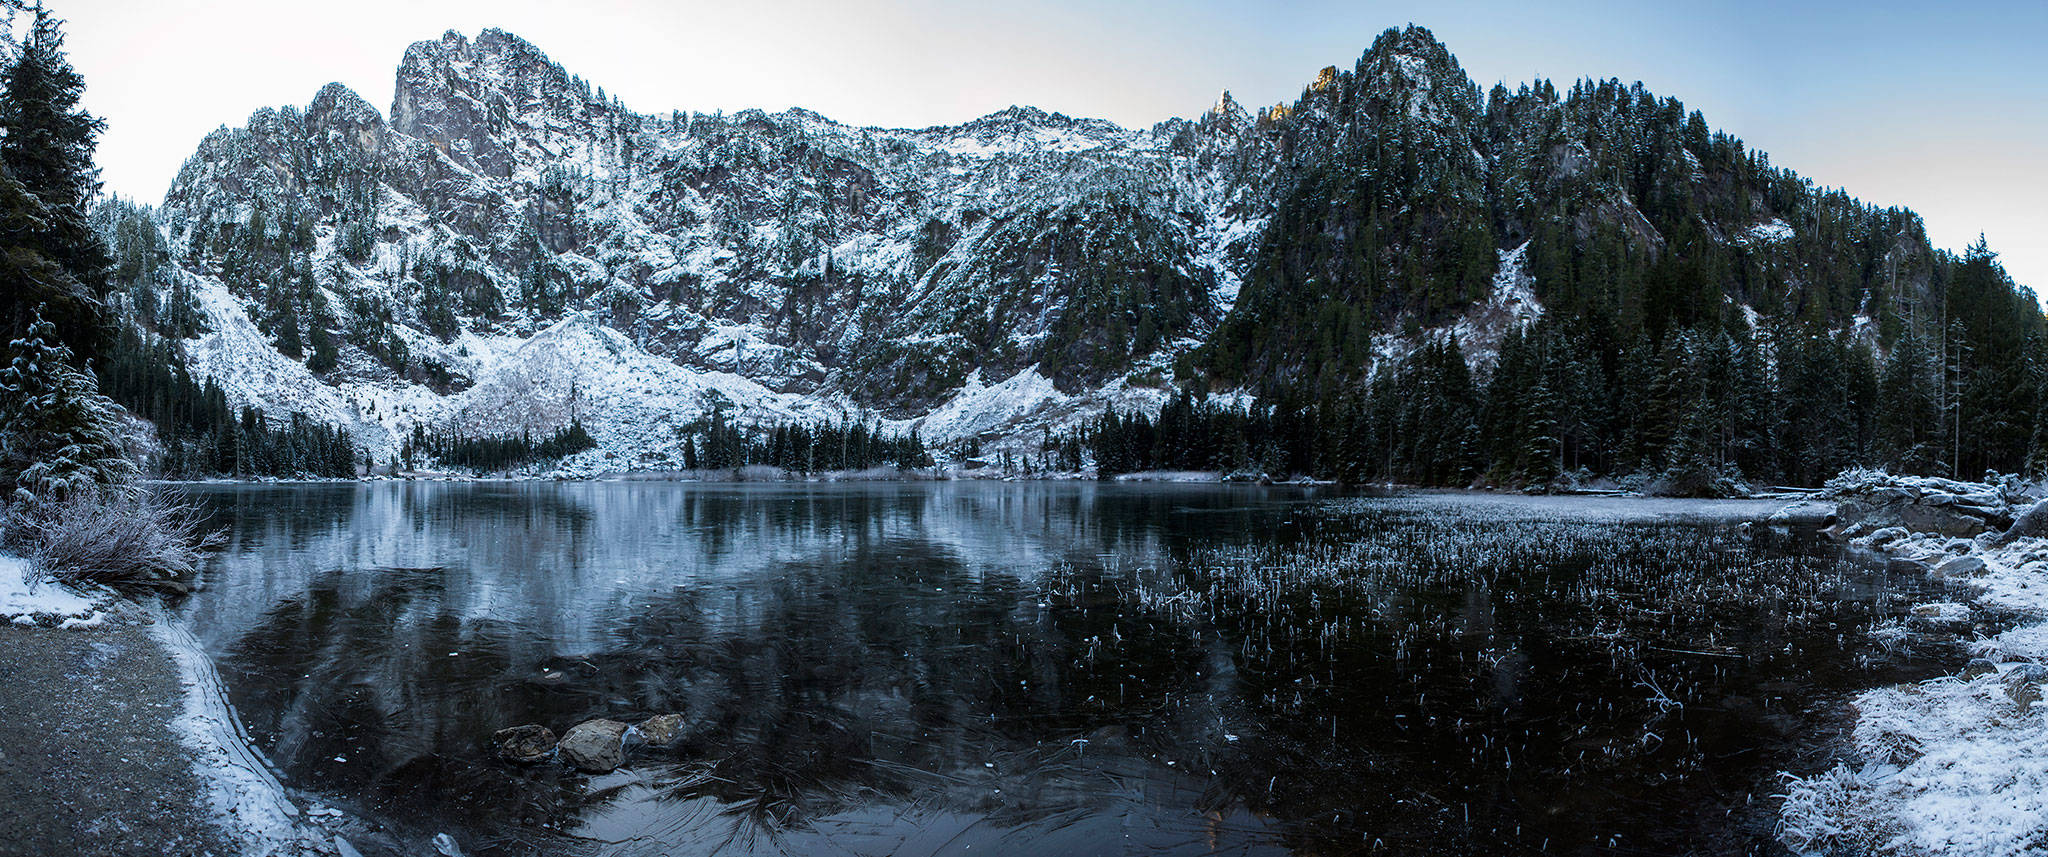 A panoramic view of Heather Lake on Wednesday, Dec. 5, 2018 in Granite Falls, Wa. (Olivia Vanni / The Herald)